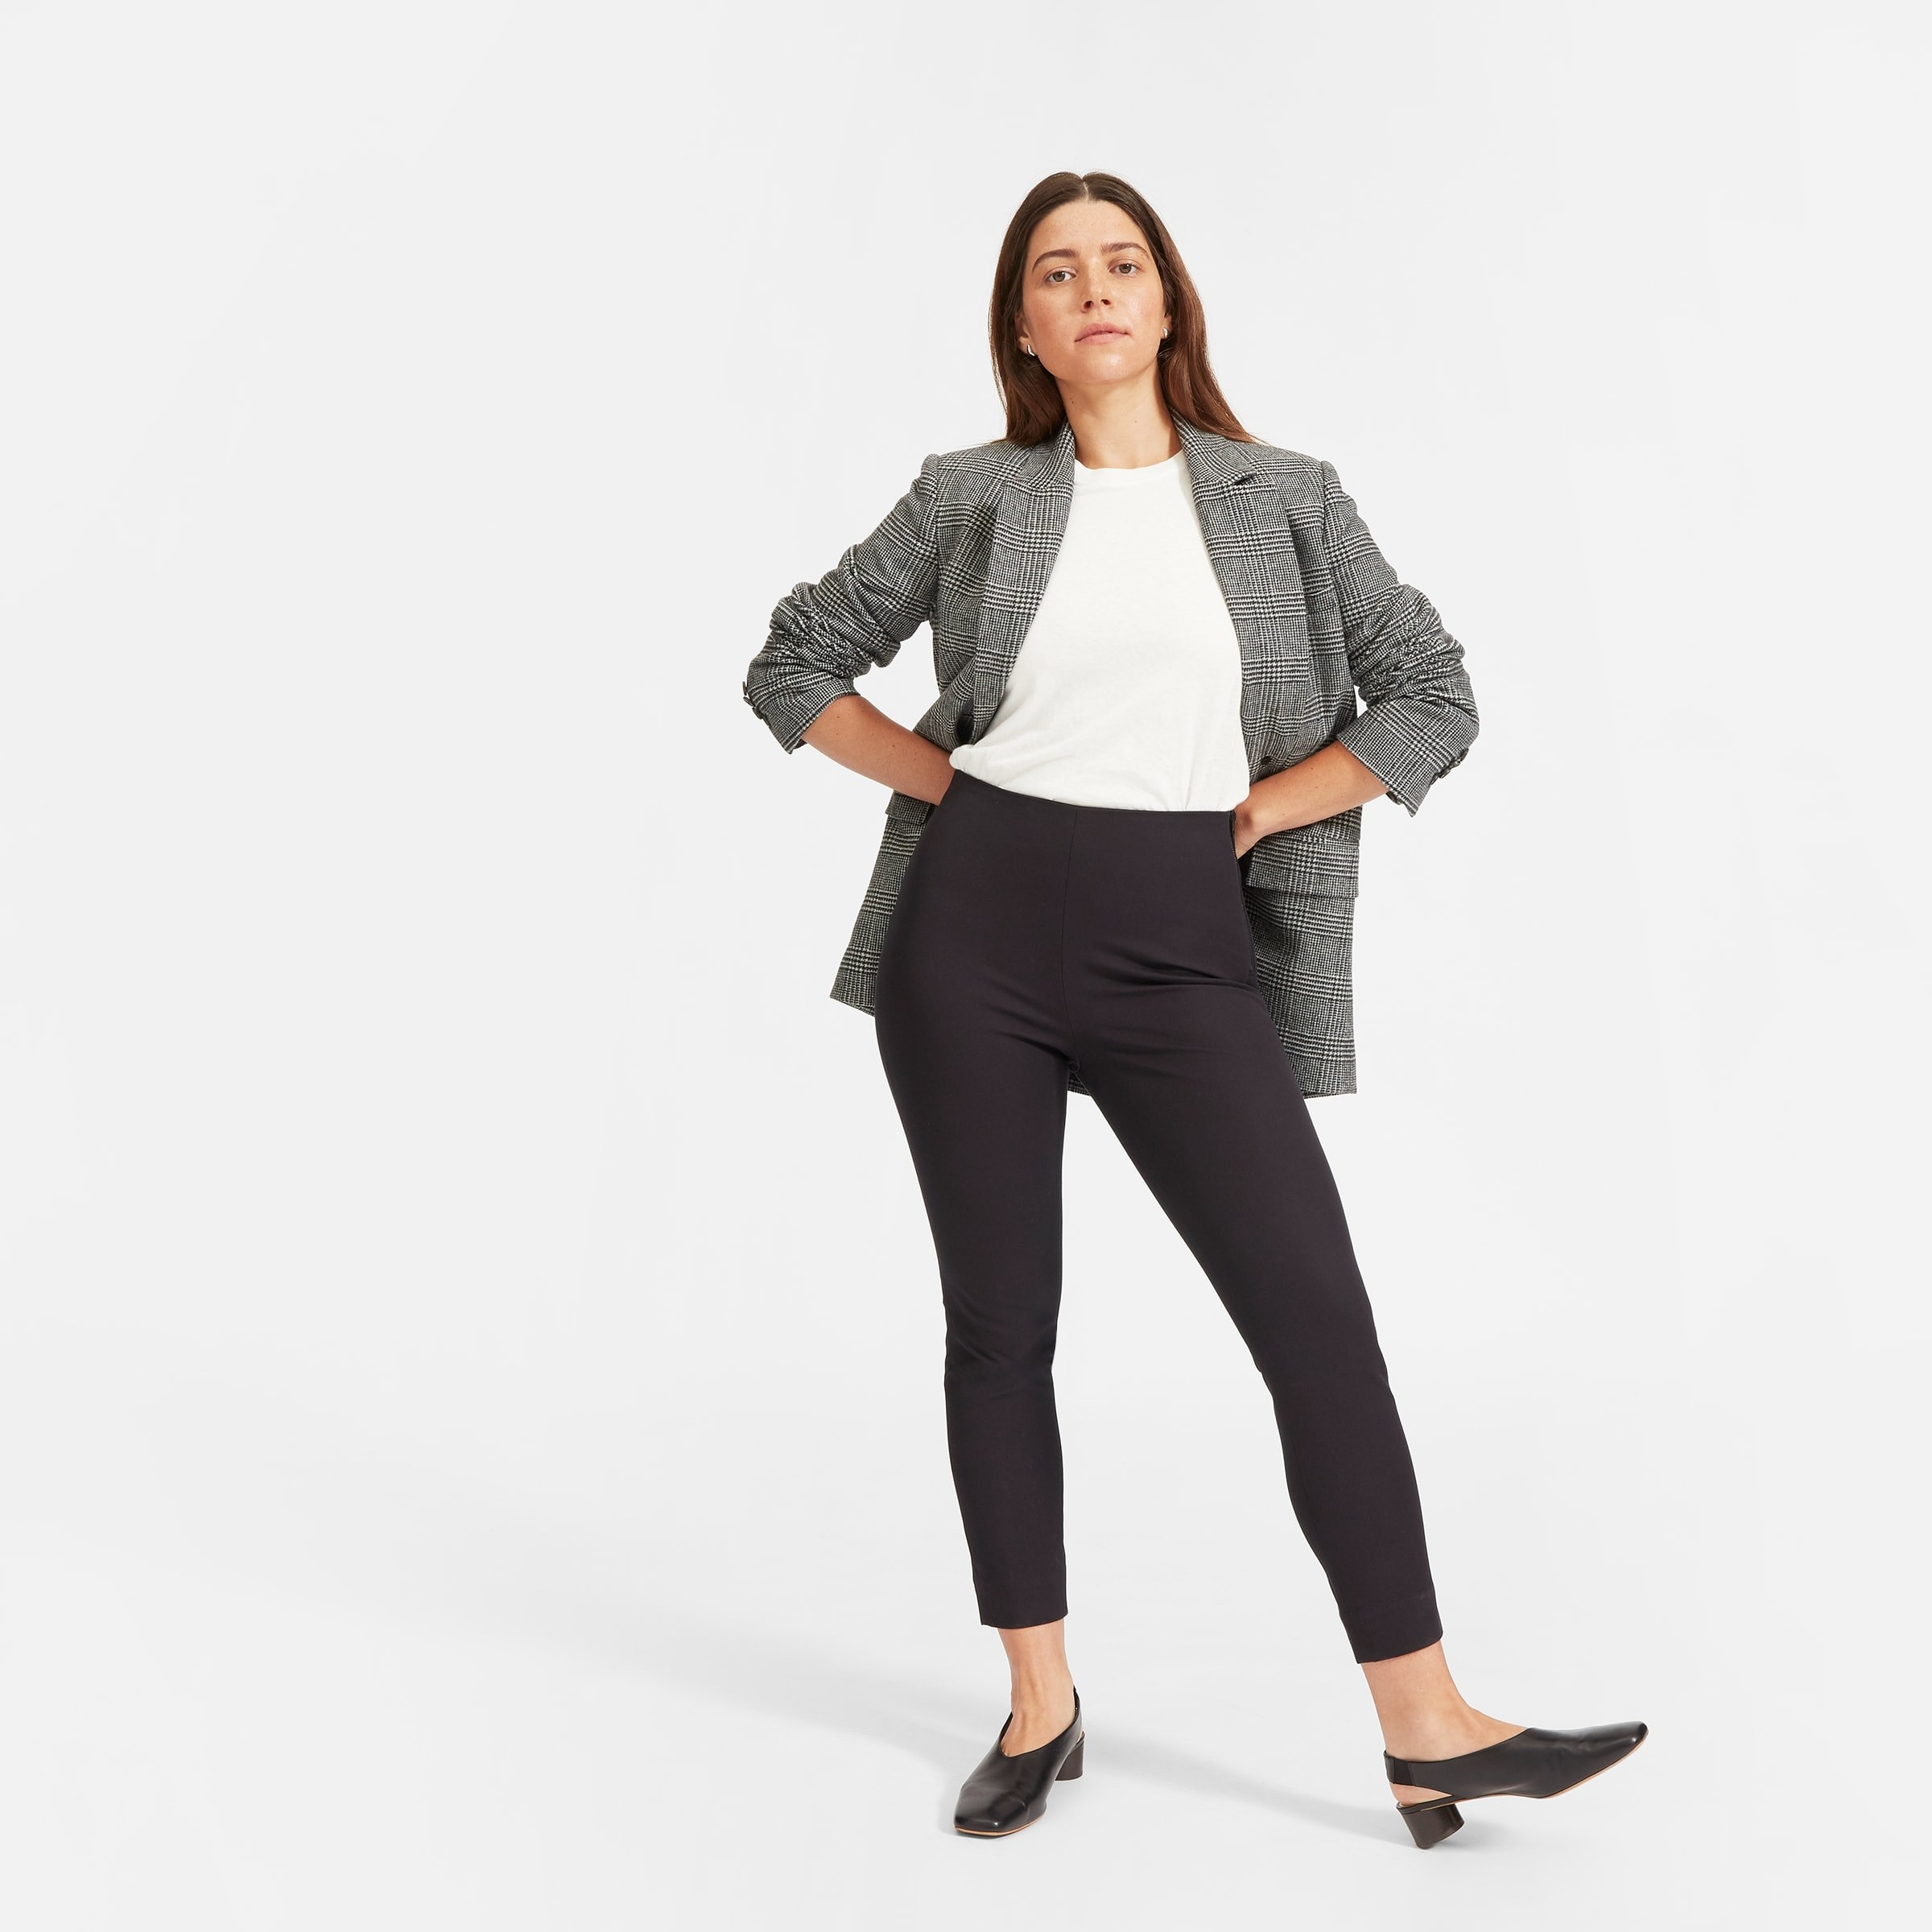 Model in the ankle length black pants